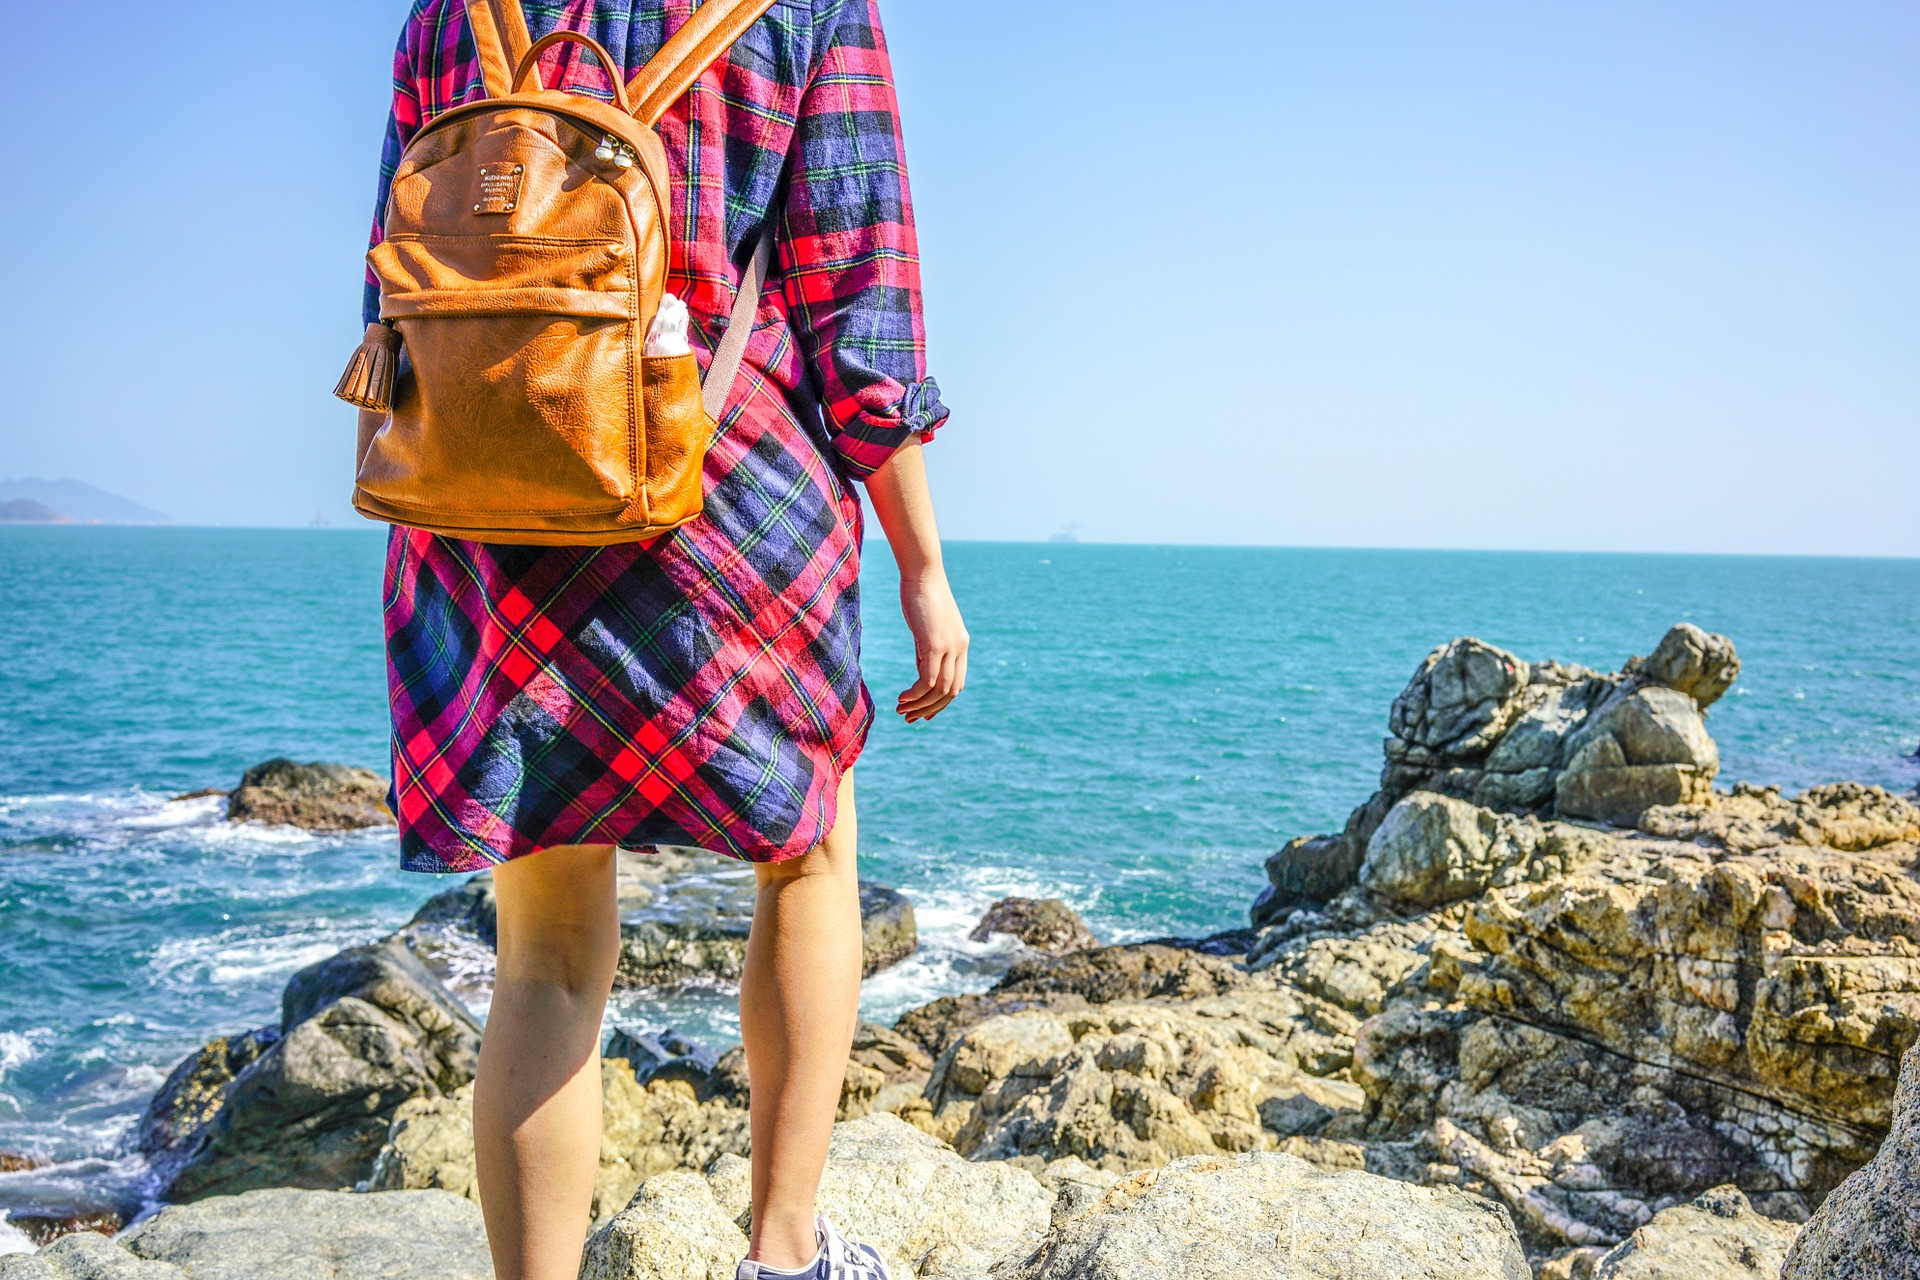 a girl on a backpack at the beach